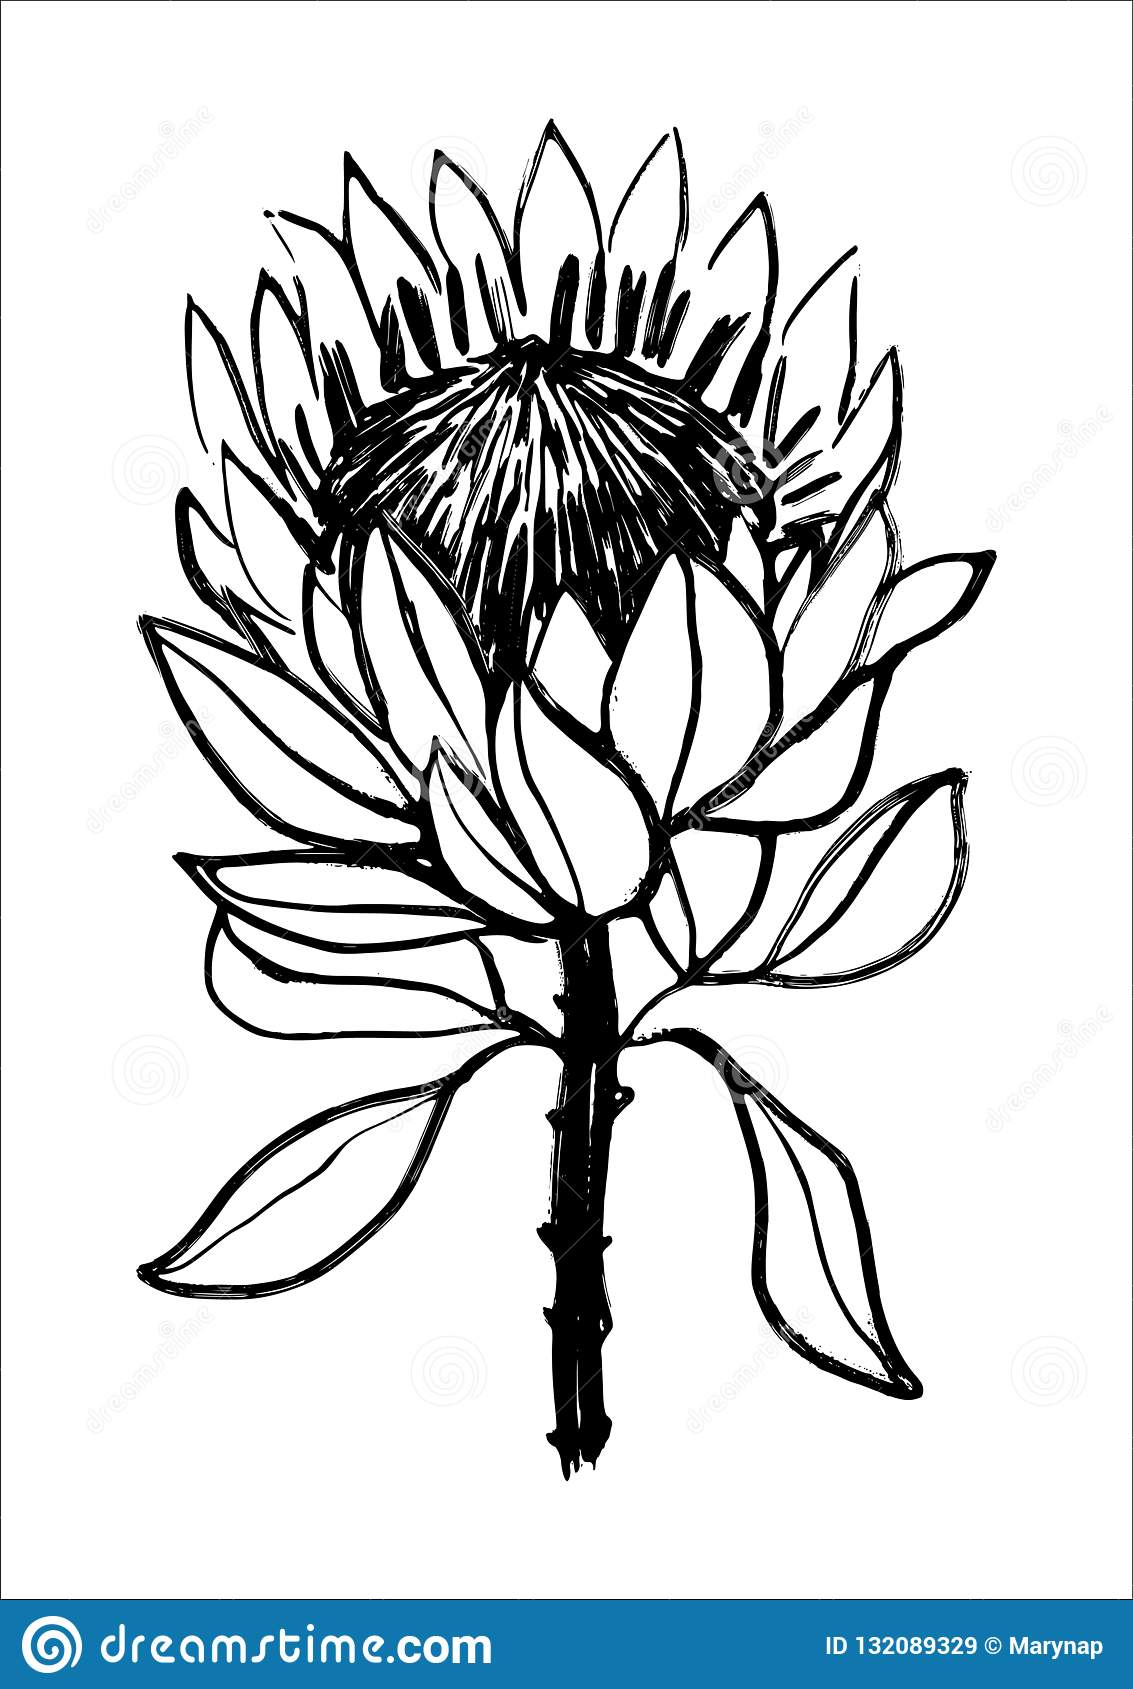 Ink Hand Drawn Protea Flower Illustration Black And White Graphics